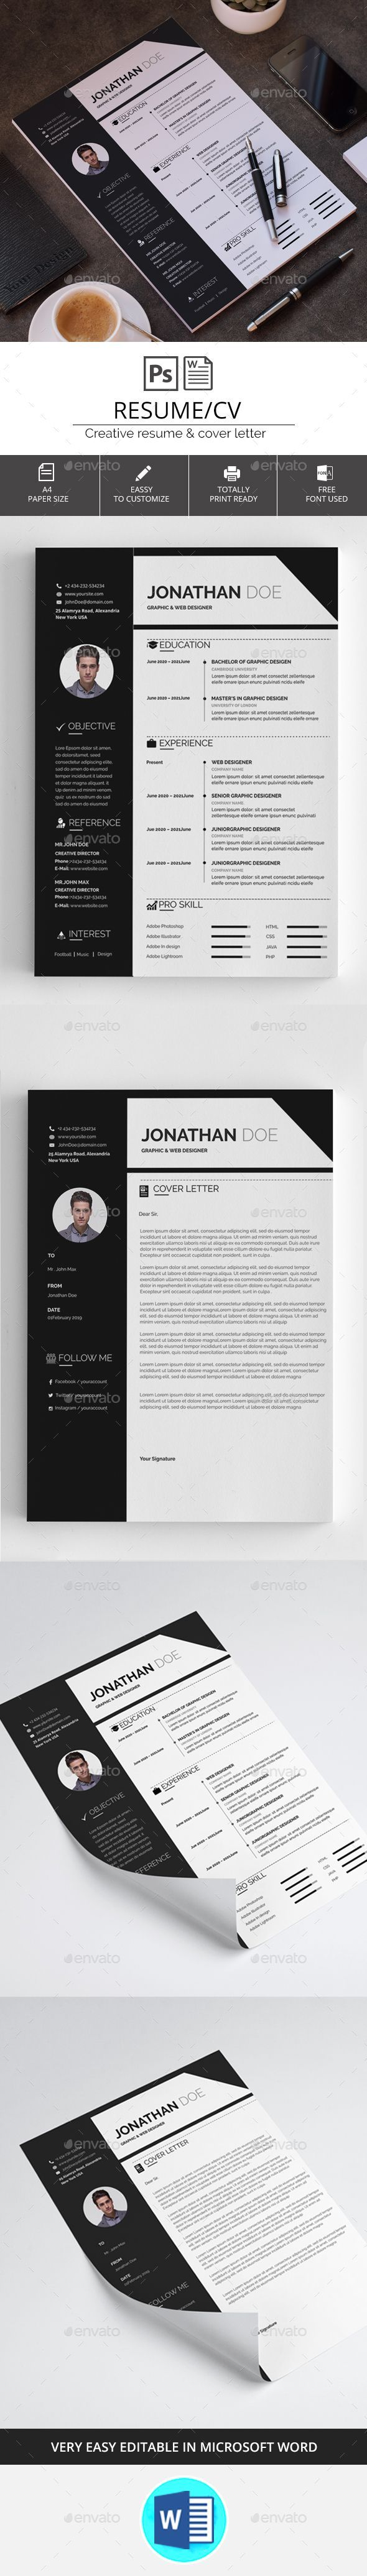 #Resume/CV - #Resumes Stationery Download here: https://graphicriver.net/item/resumecv/20442741?ref=alena994